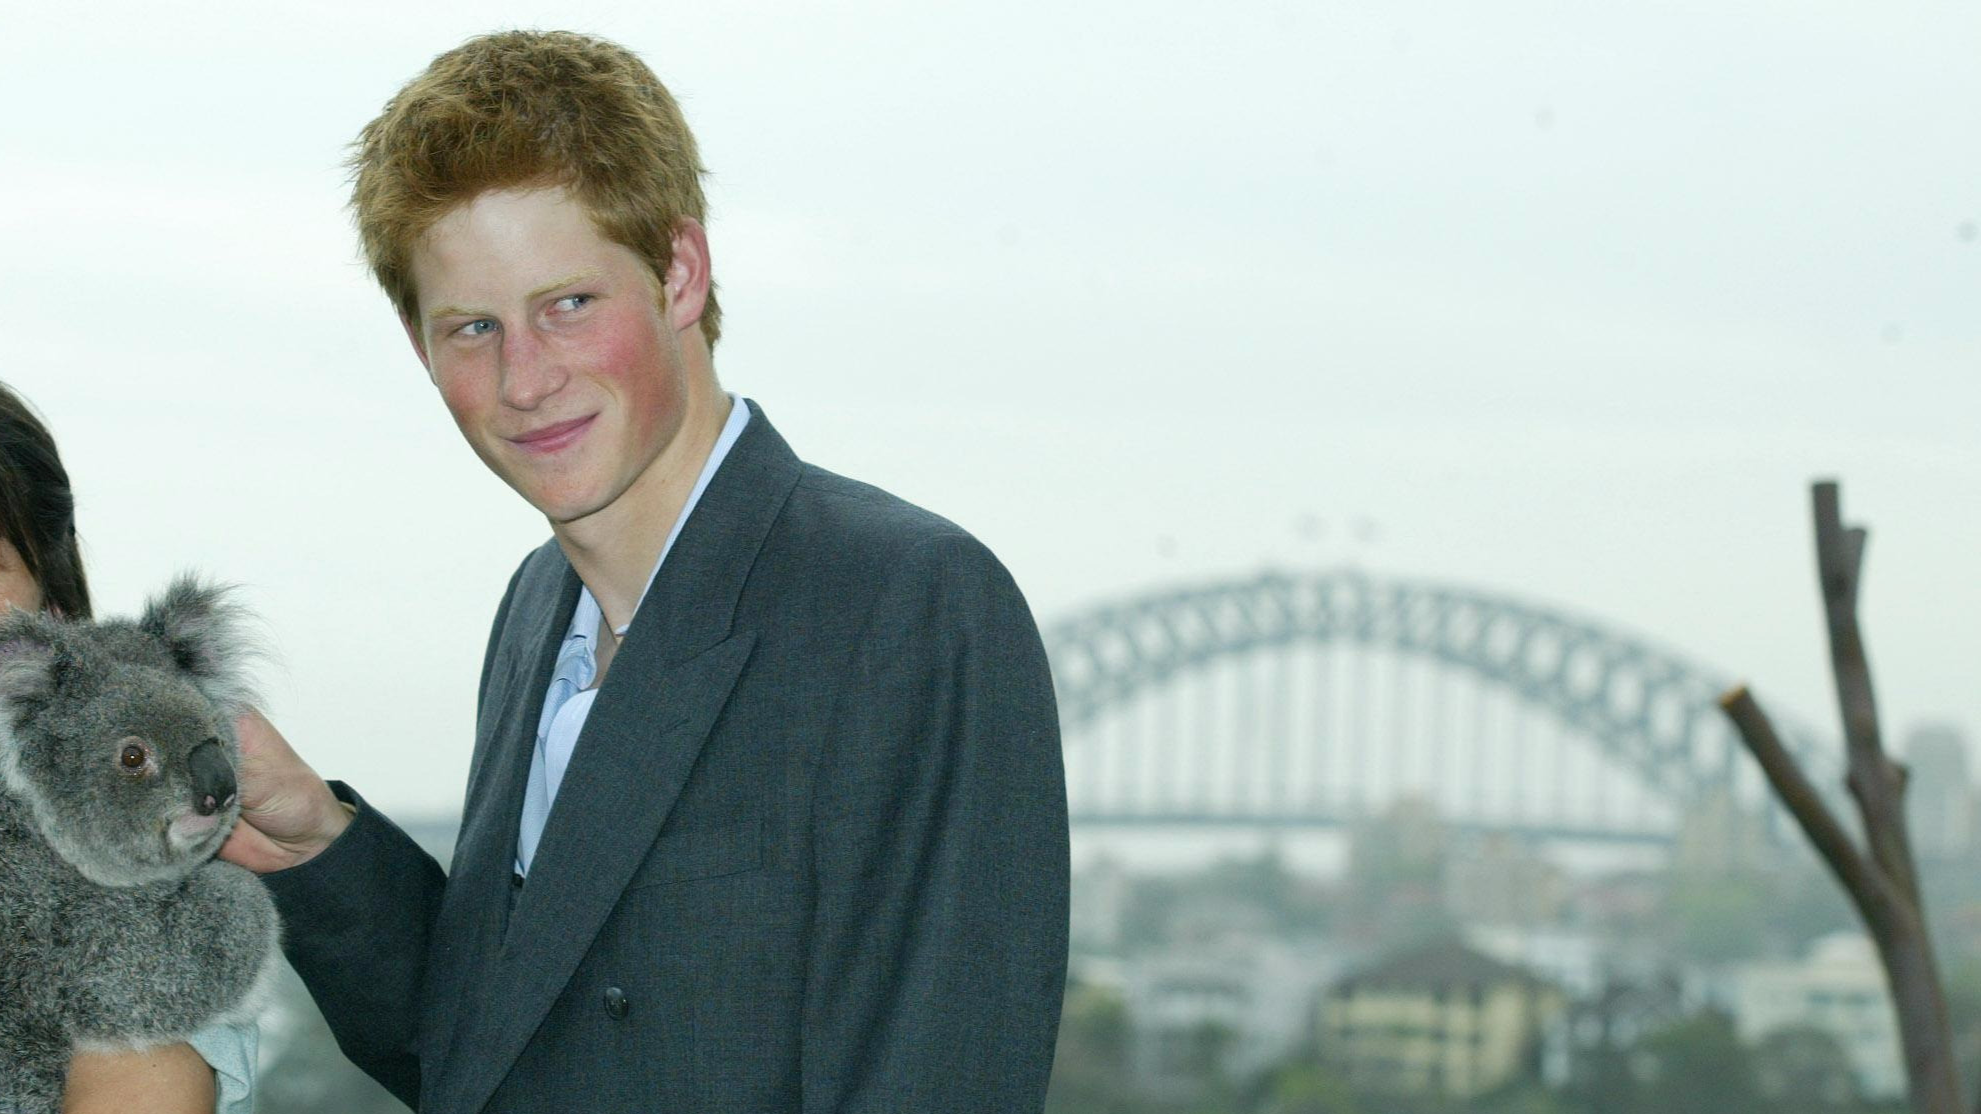 Aussie MP Has Invited Prince Harry To Have His Buck's Party On Our Shores